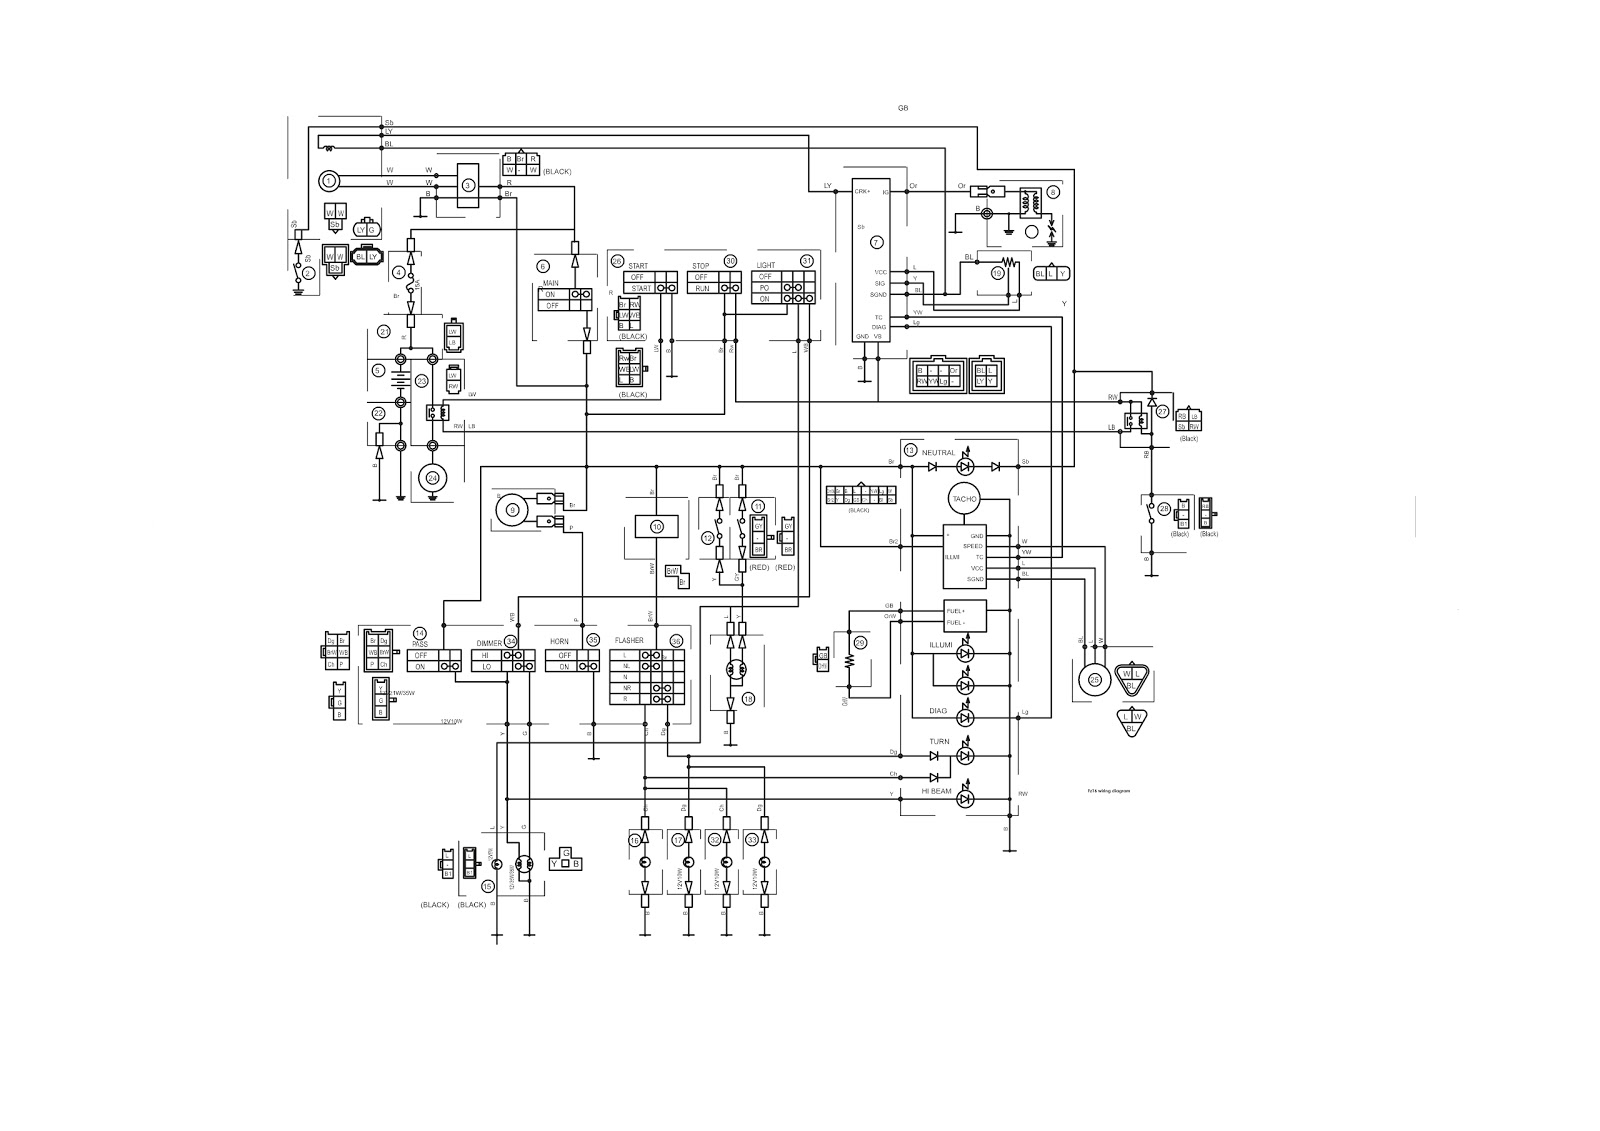 2006 Ez Go Txt Wiring Diagram 2002 Electric Golf Cart For Ezgo Readingrat   59781e998bf27   Wiring Diagram as well Auto Fuse Box Clip Art in addition Gallery furthermore 282249101622349651 further 1981 Ezgo Golf Cart Wiring Diagram. on harley davidson wiring diagram manual charger